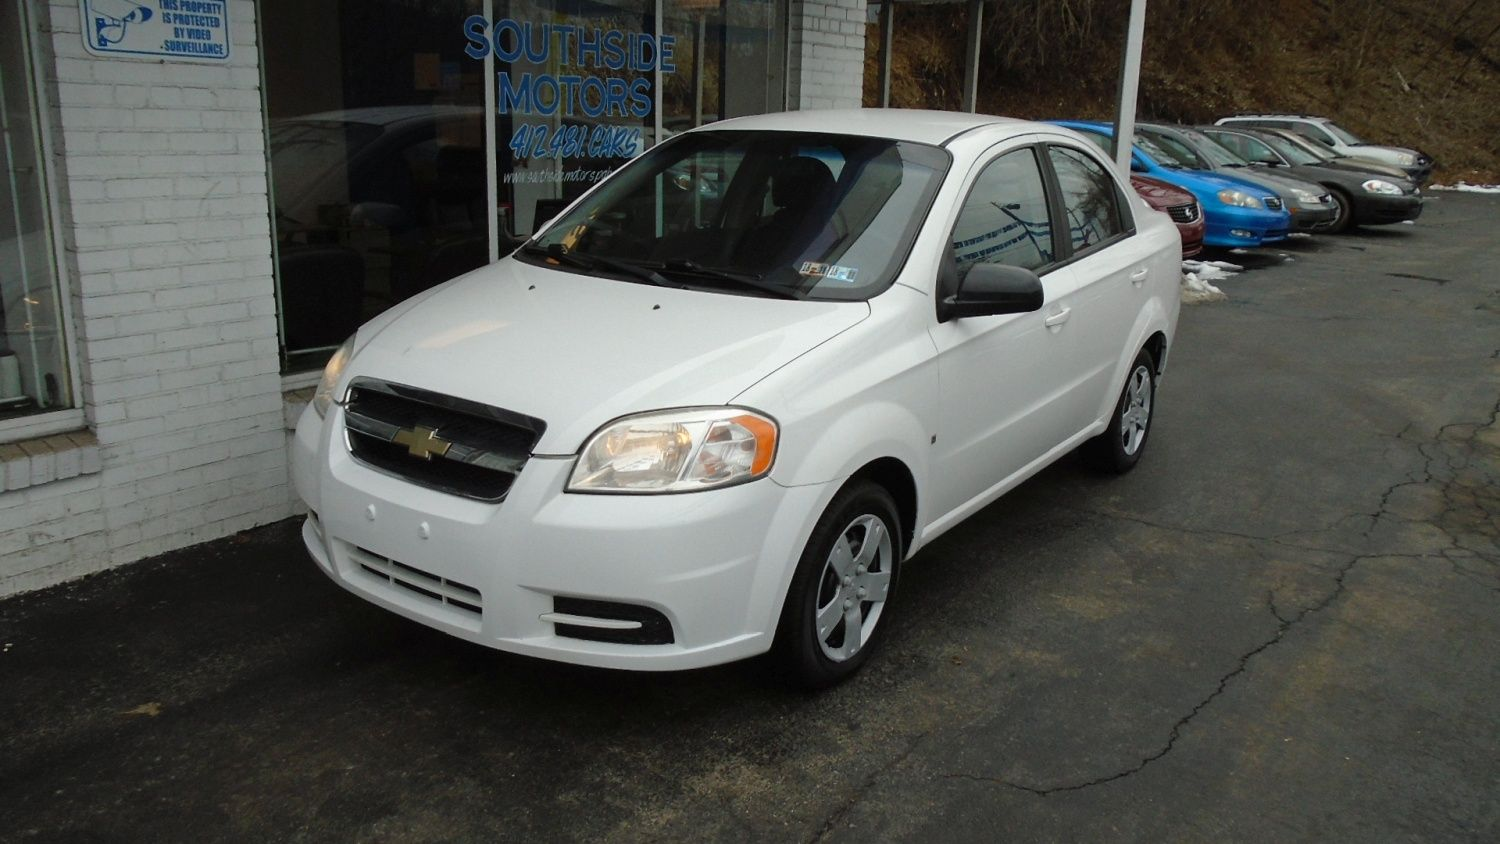 2009 Chevrolet Aveo Lt Easy To Handle And Great On Gas Latest Cars Vehicles Used Cars